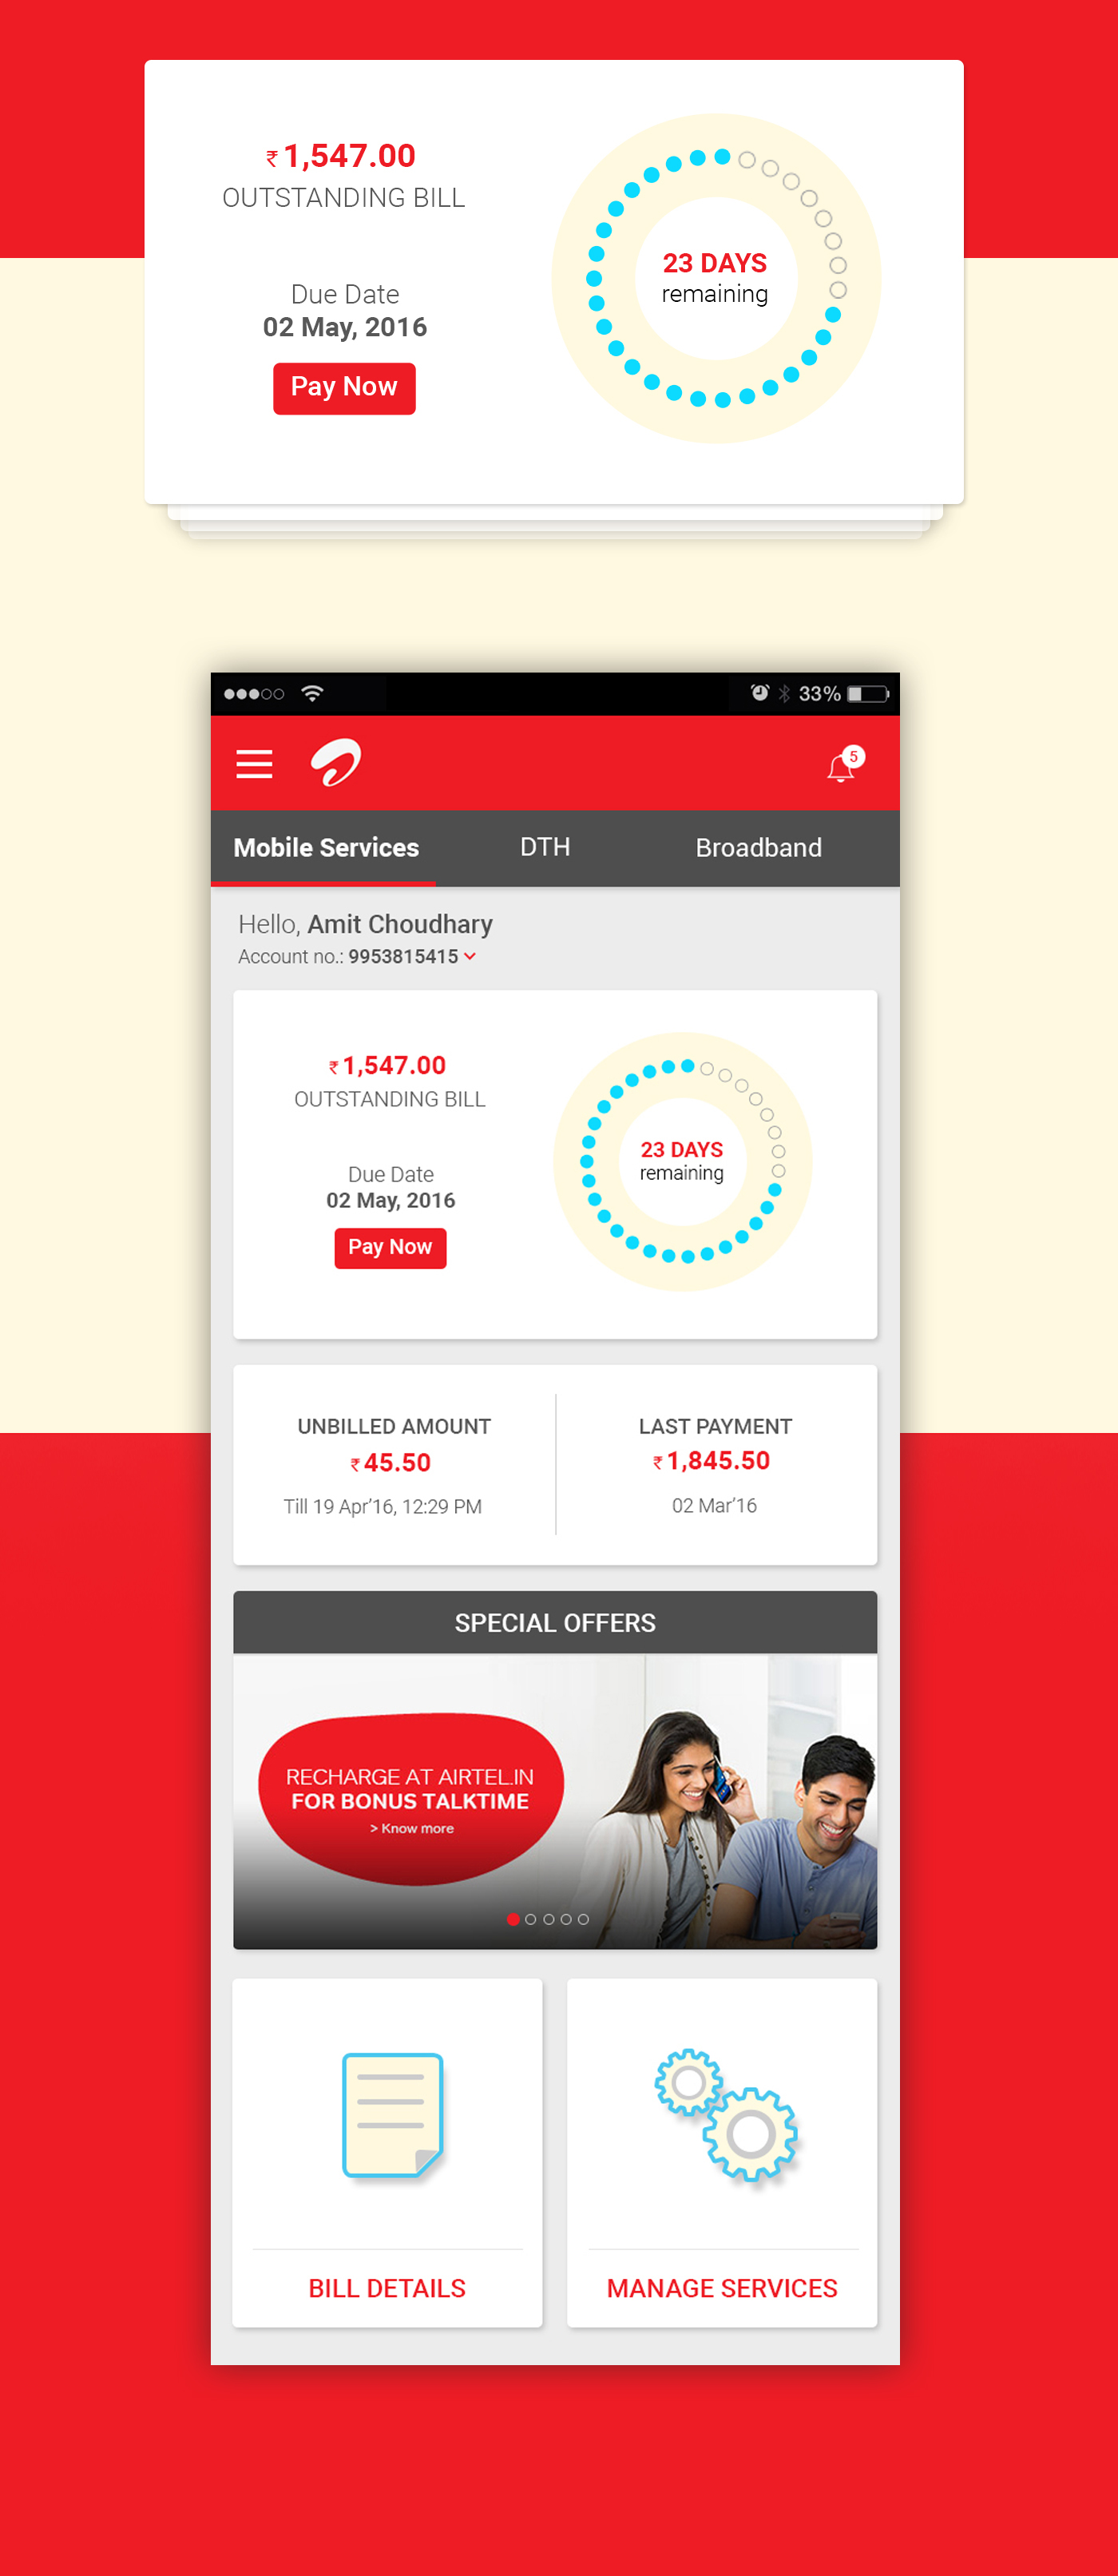 how to pay airtel bill online